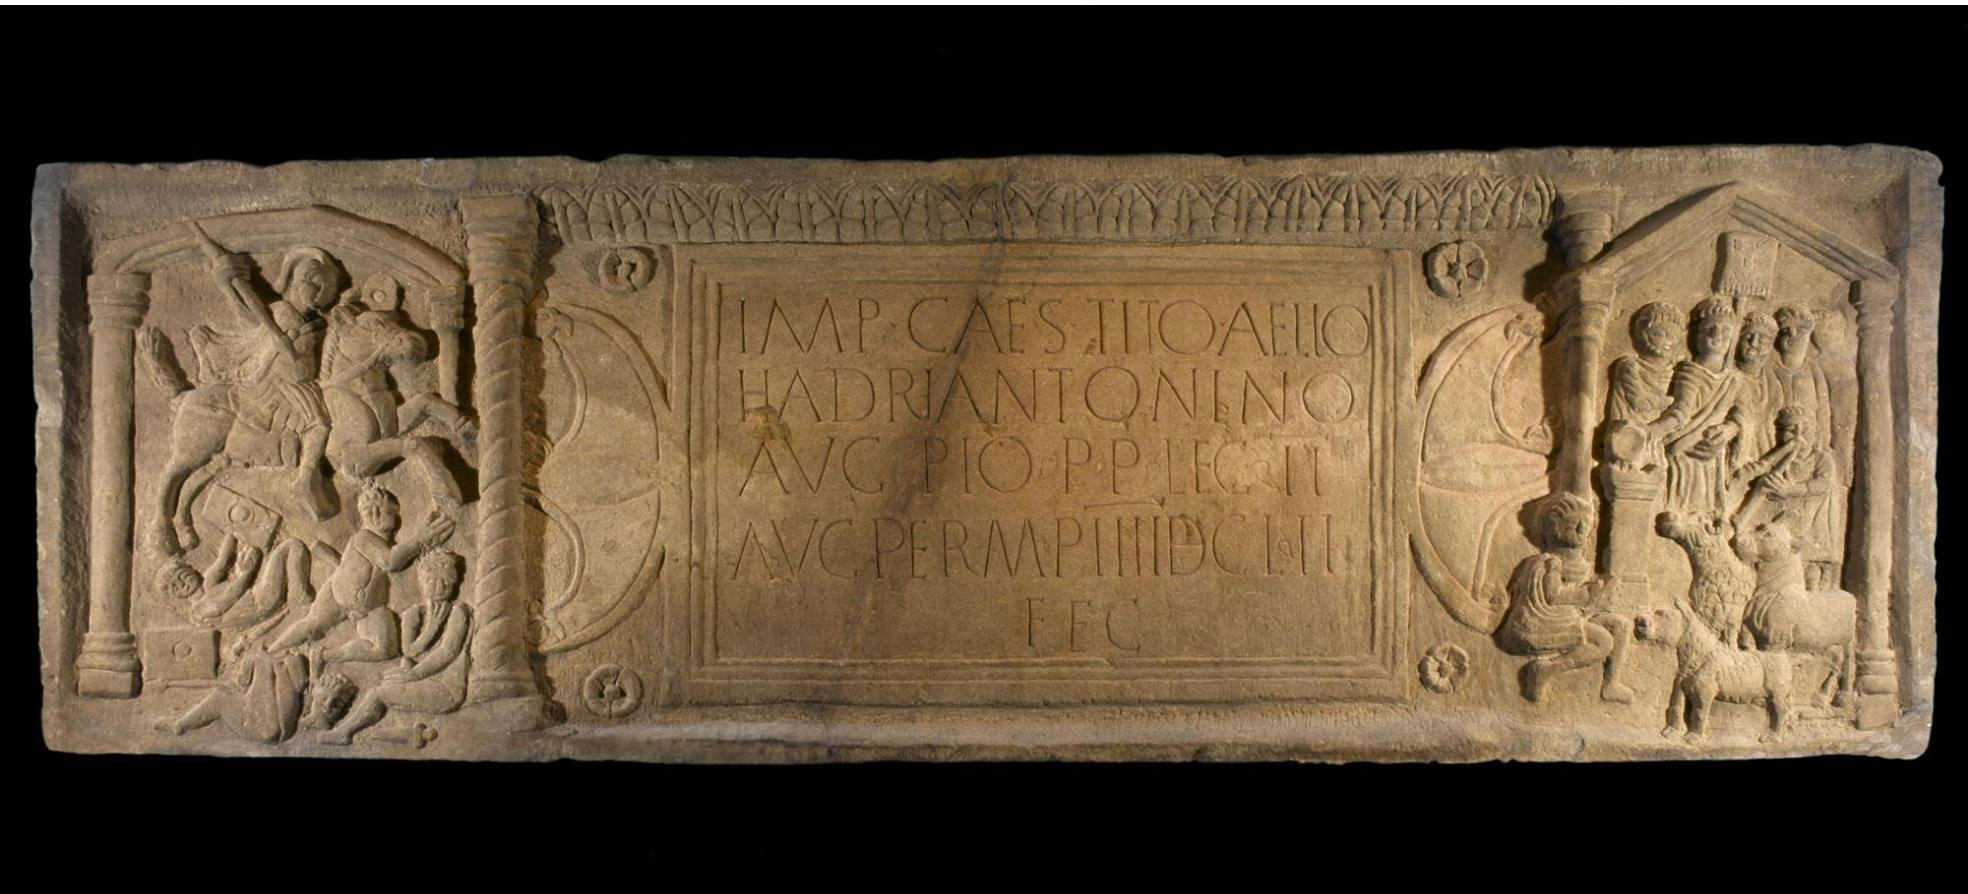 Commemorative stone from the Antonine Wall